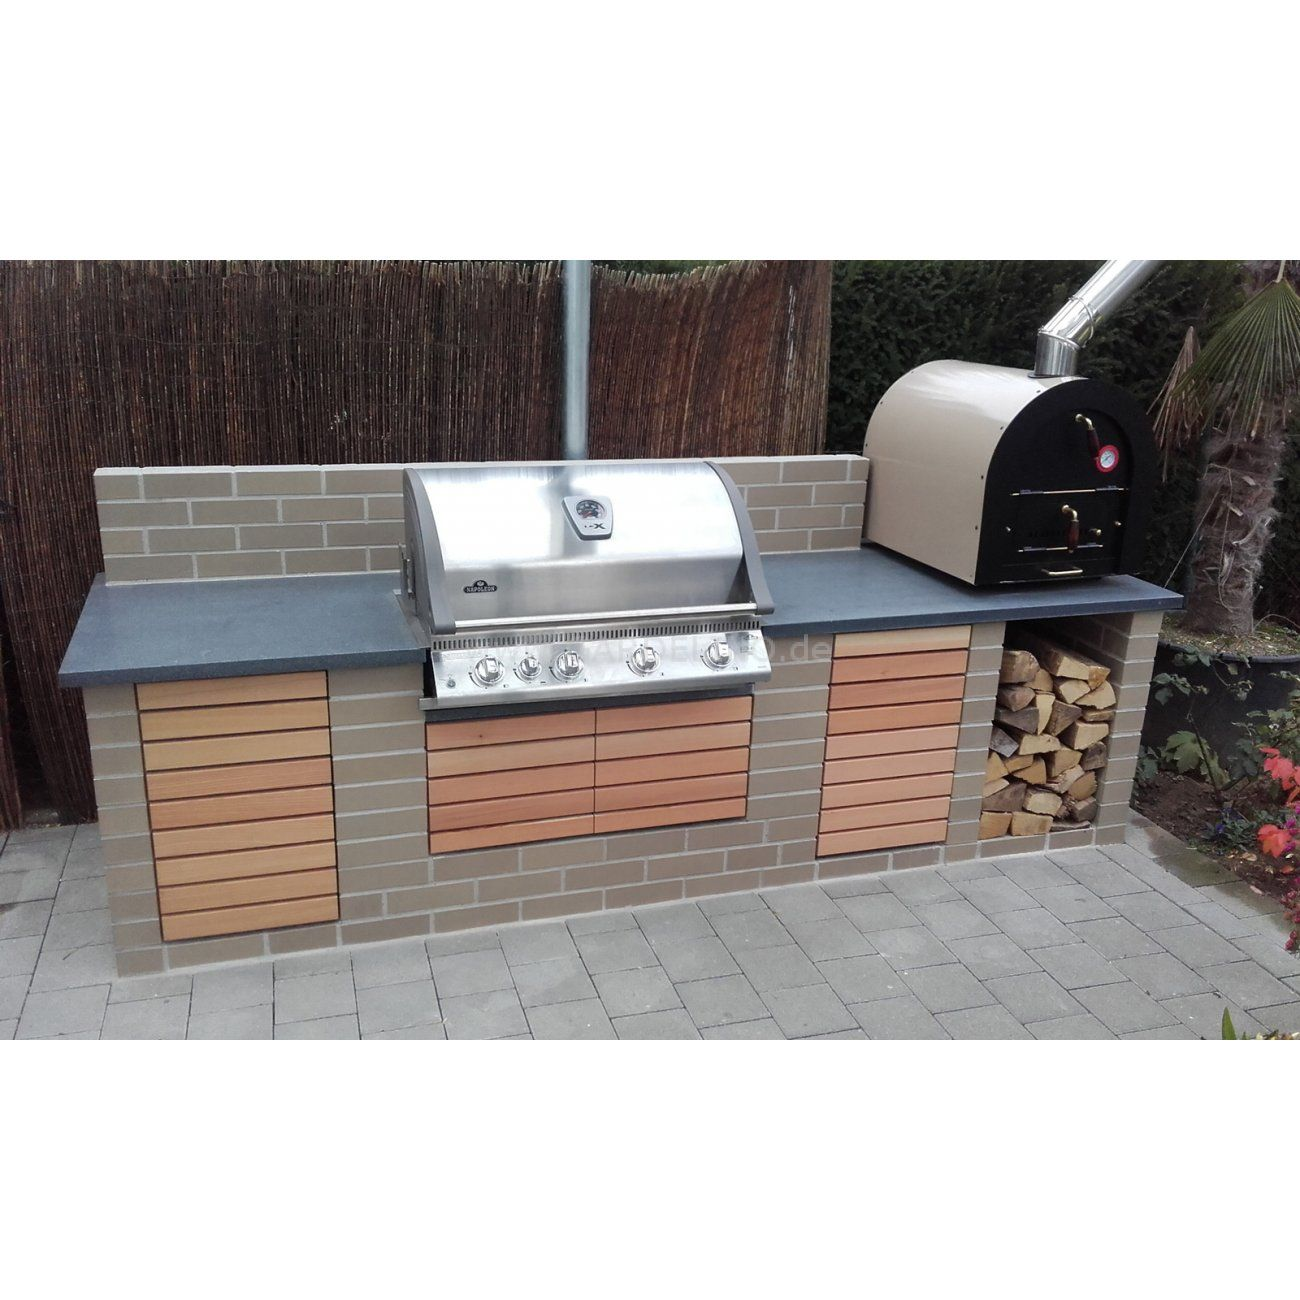 Outdoorkuche Mit Napoleon Grill Und Valoriani Pizzaofen Aus Holz Und Stein Simple Outdoor Kitchen With Na Pizzaofen Eingebauter Grill Design Fur Aussenkuche